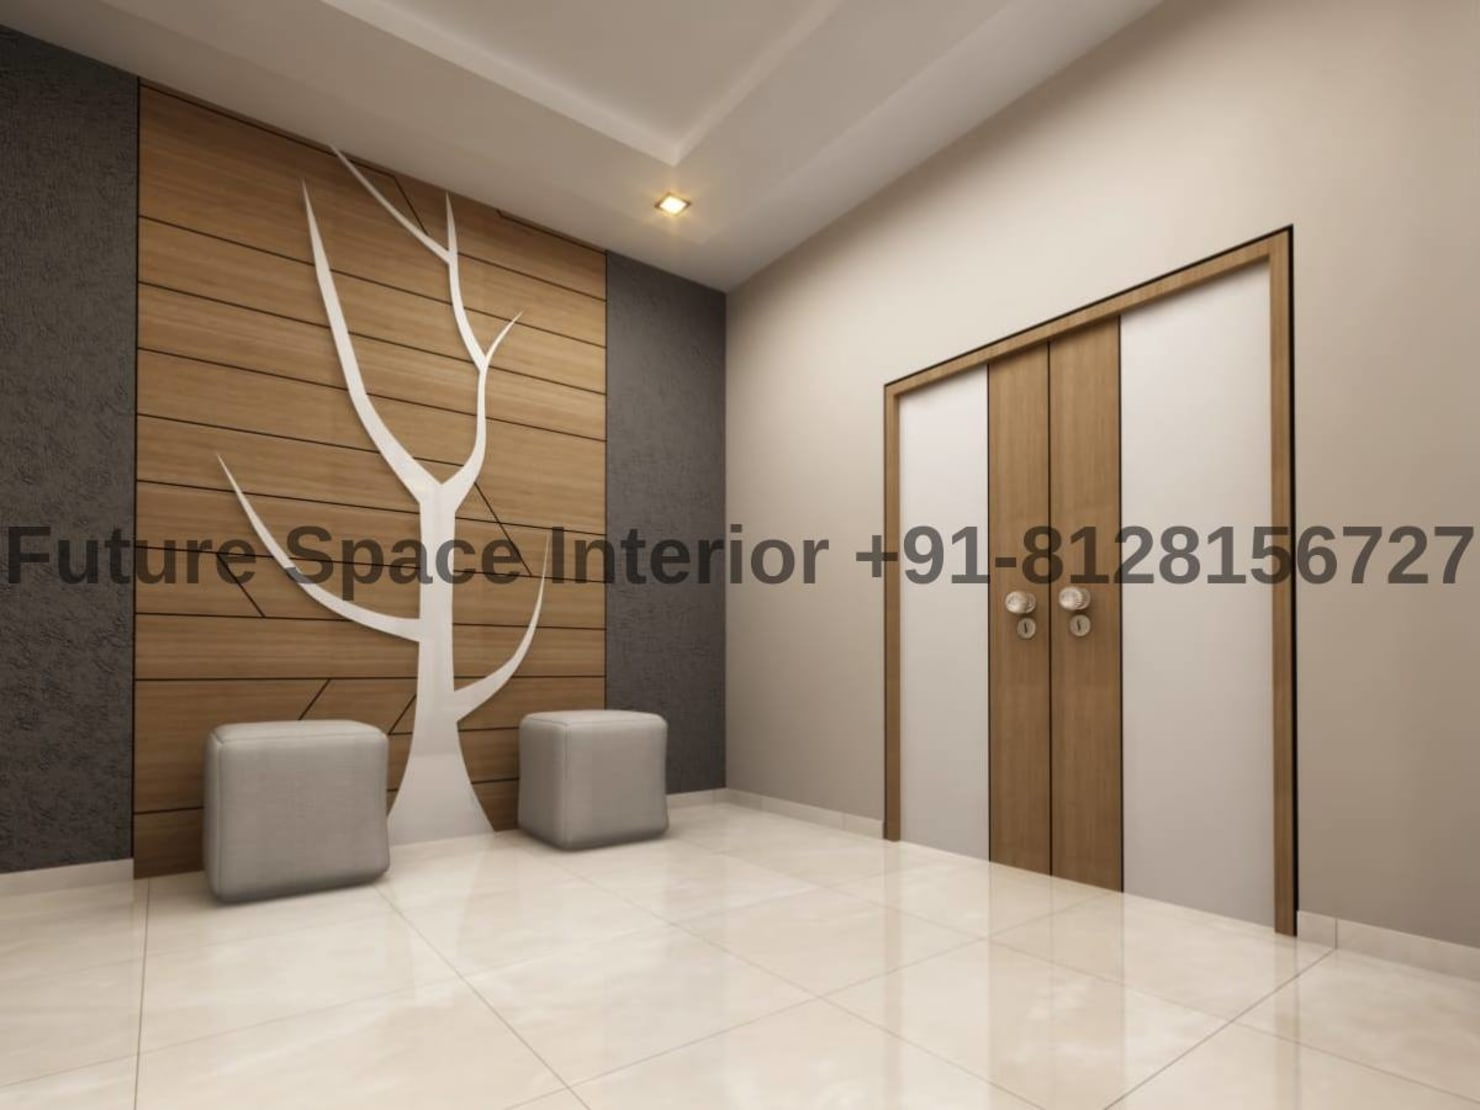 Modern home with state-of-art interiors in Ahmedabad